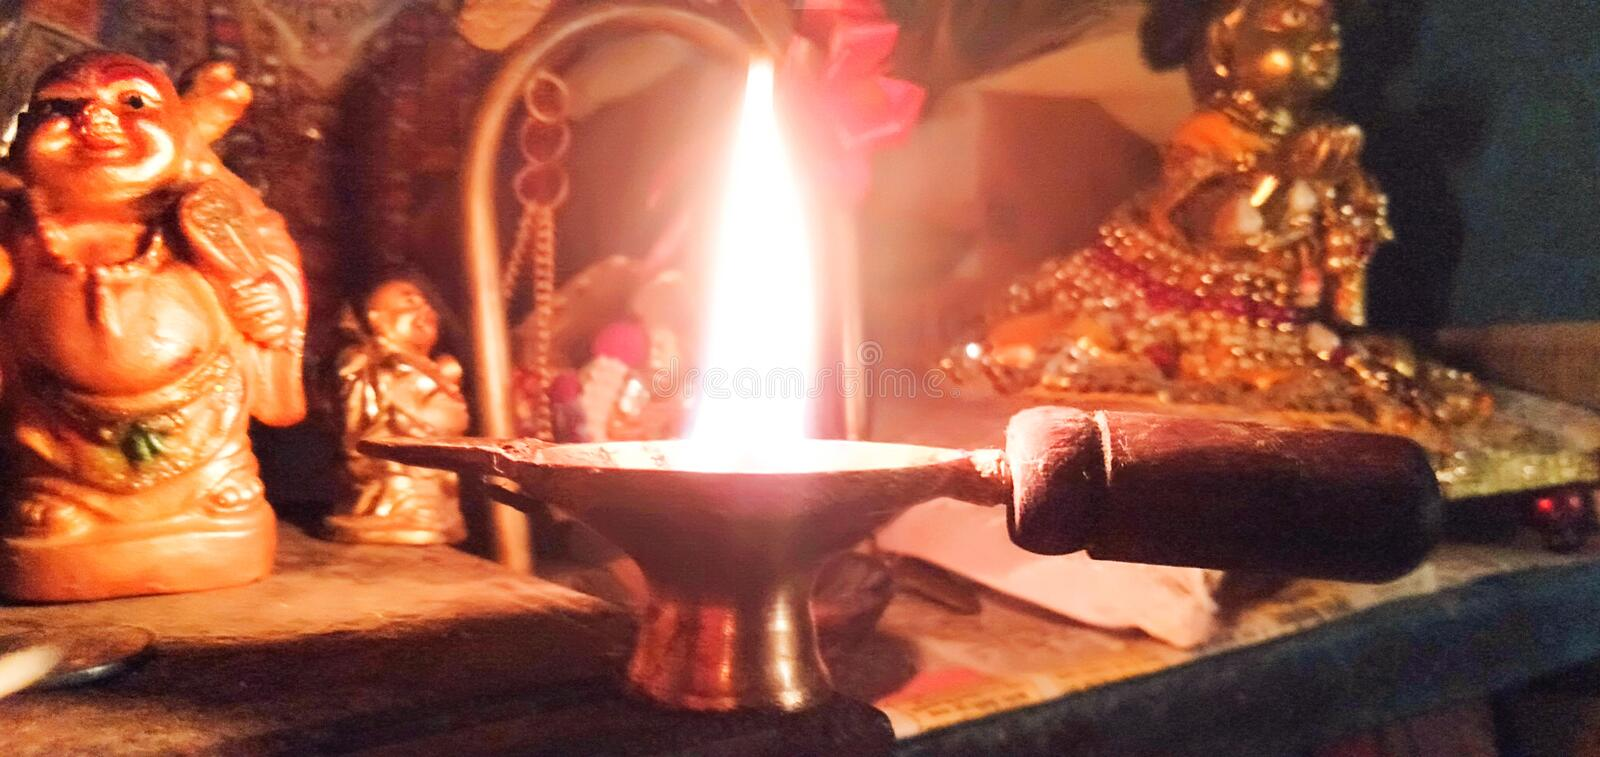 Evening light in the tample. Photo of the lamp that burns in the tample during the evening royalty free stock photography